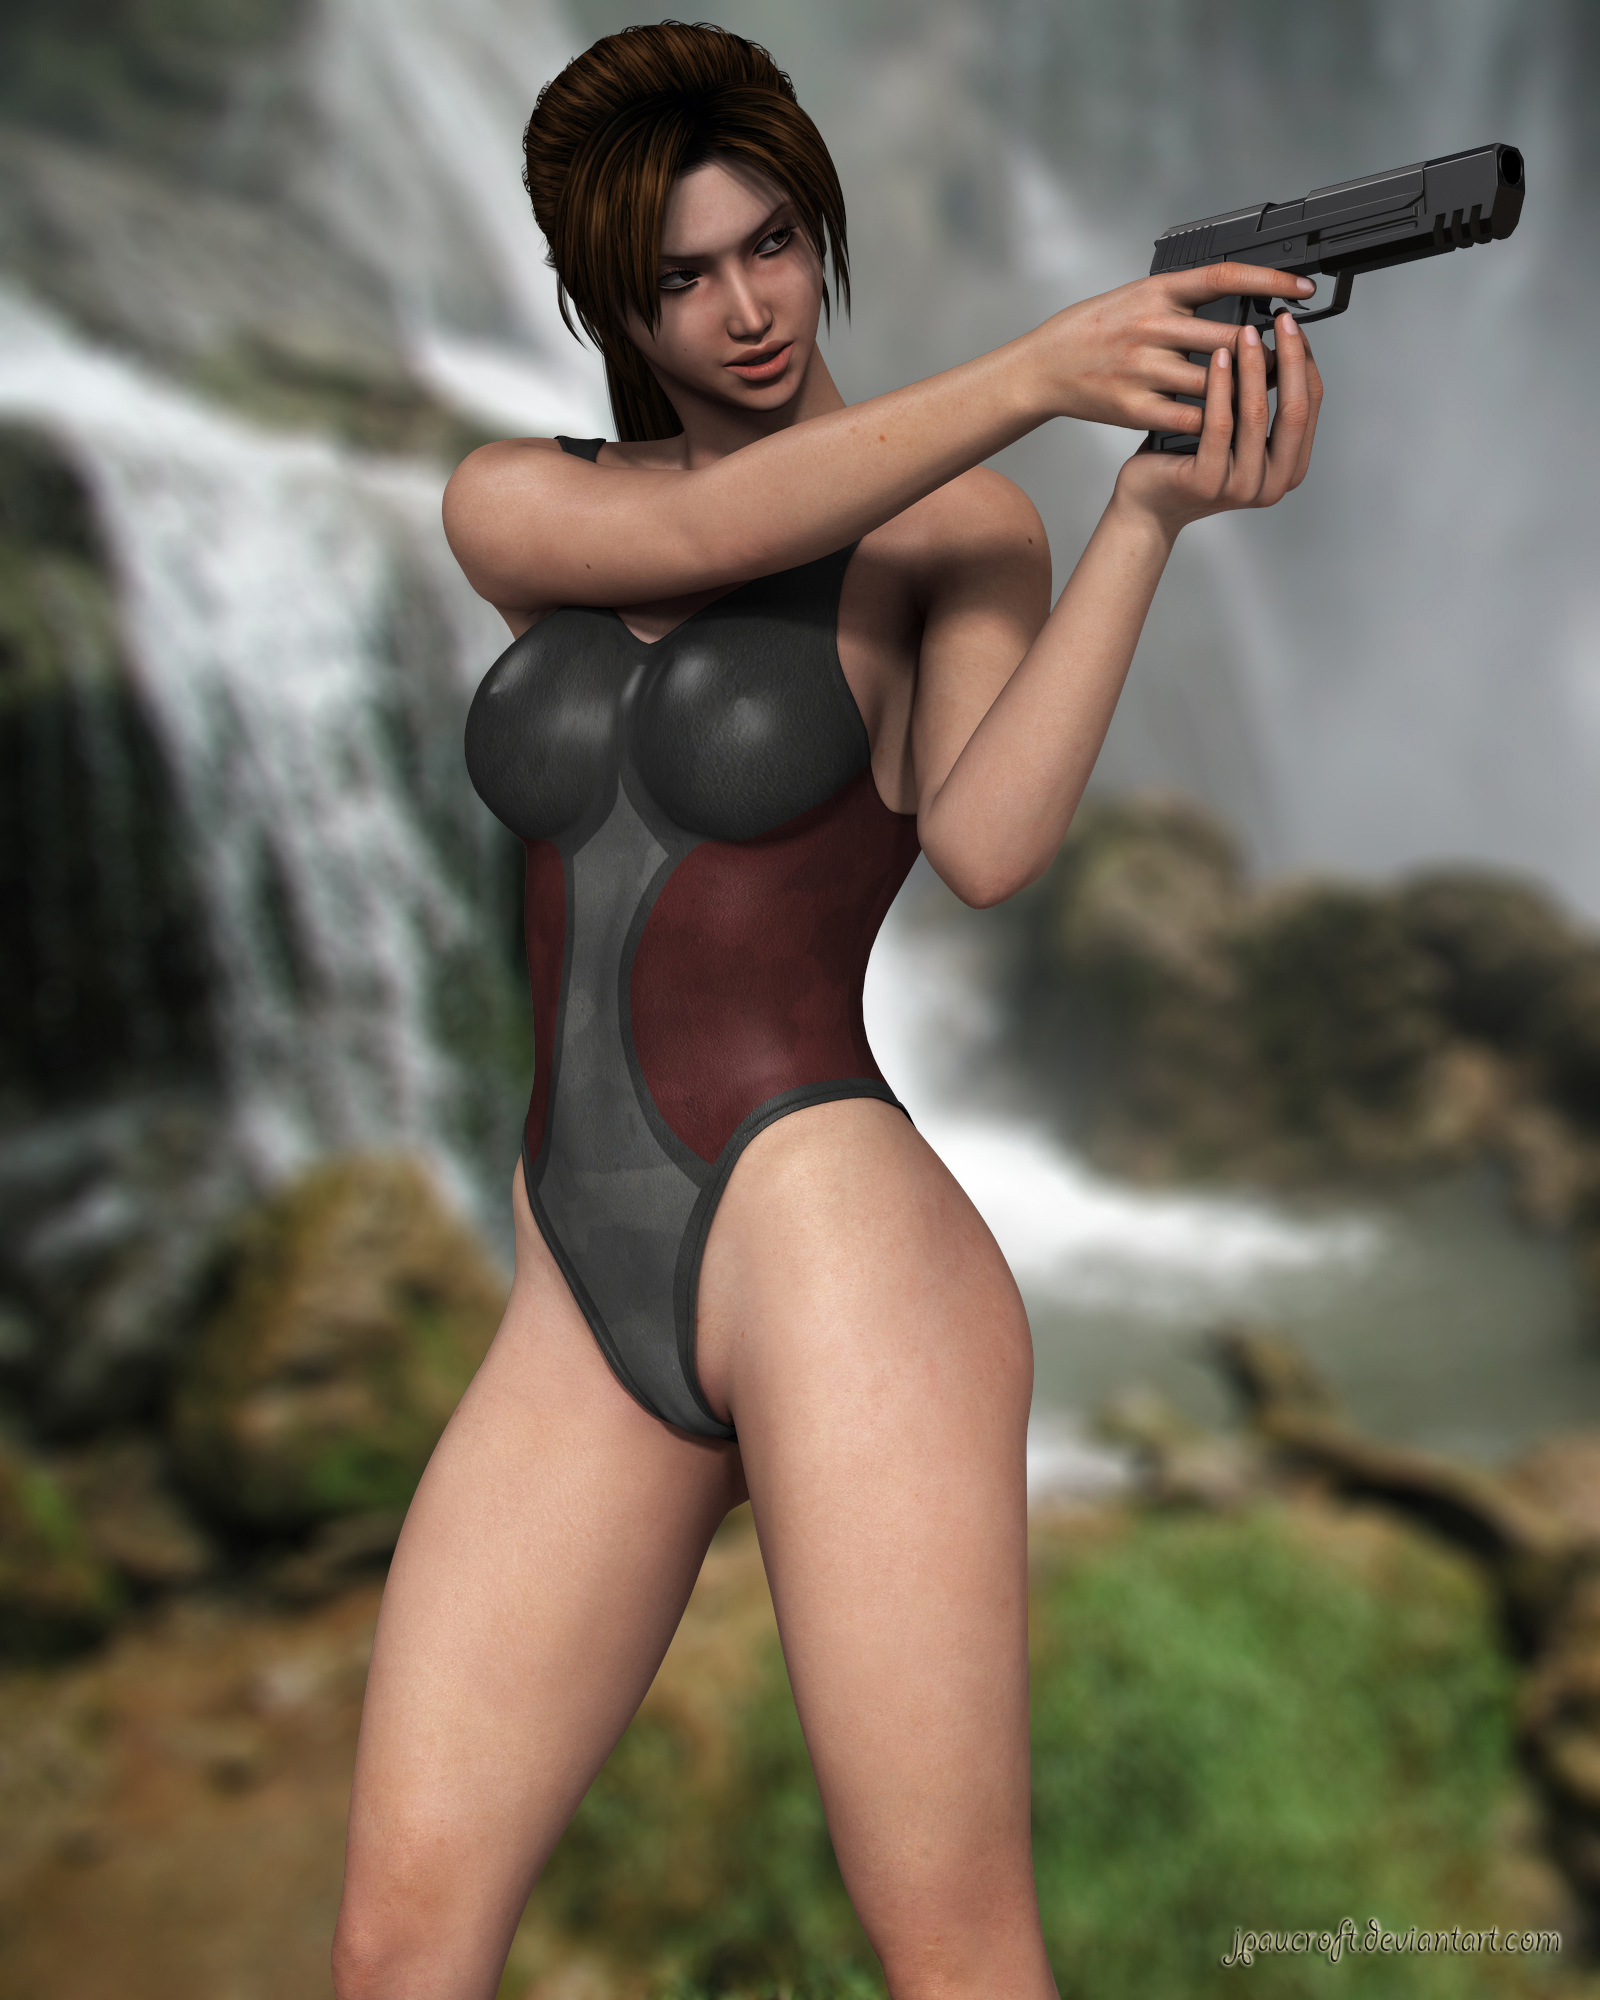 Lara V5 Swimsuit 2 by JpauCroft